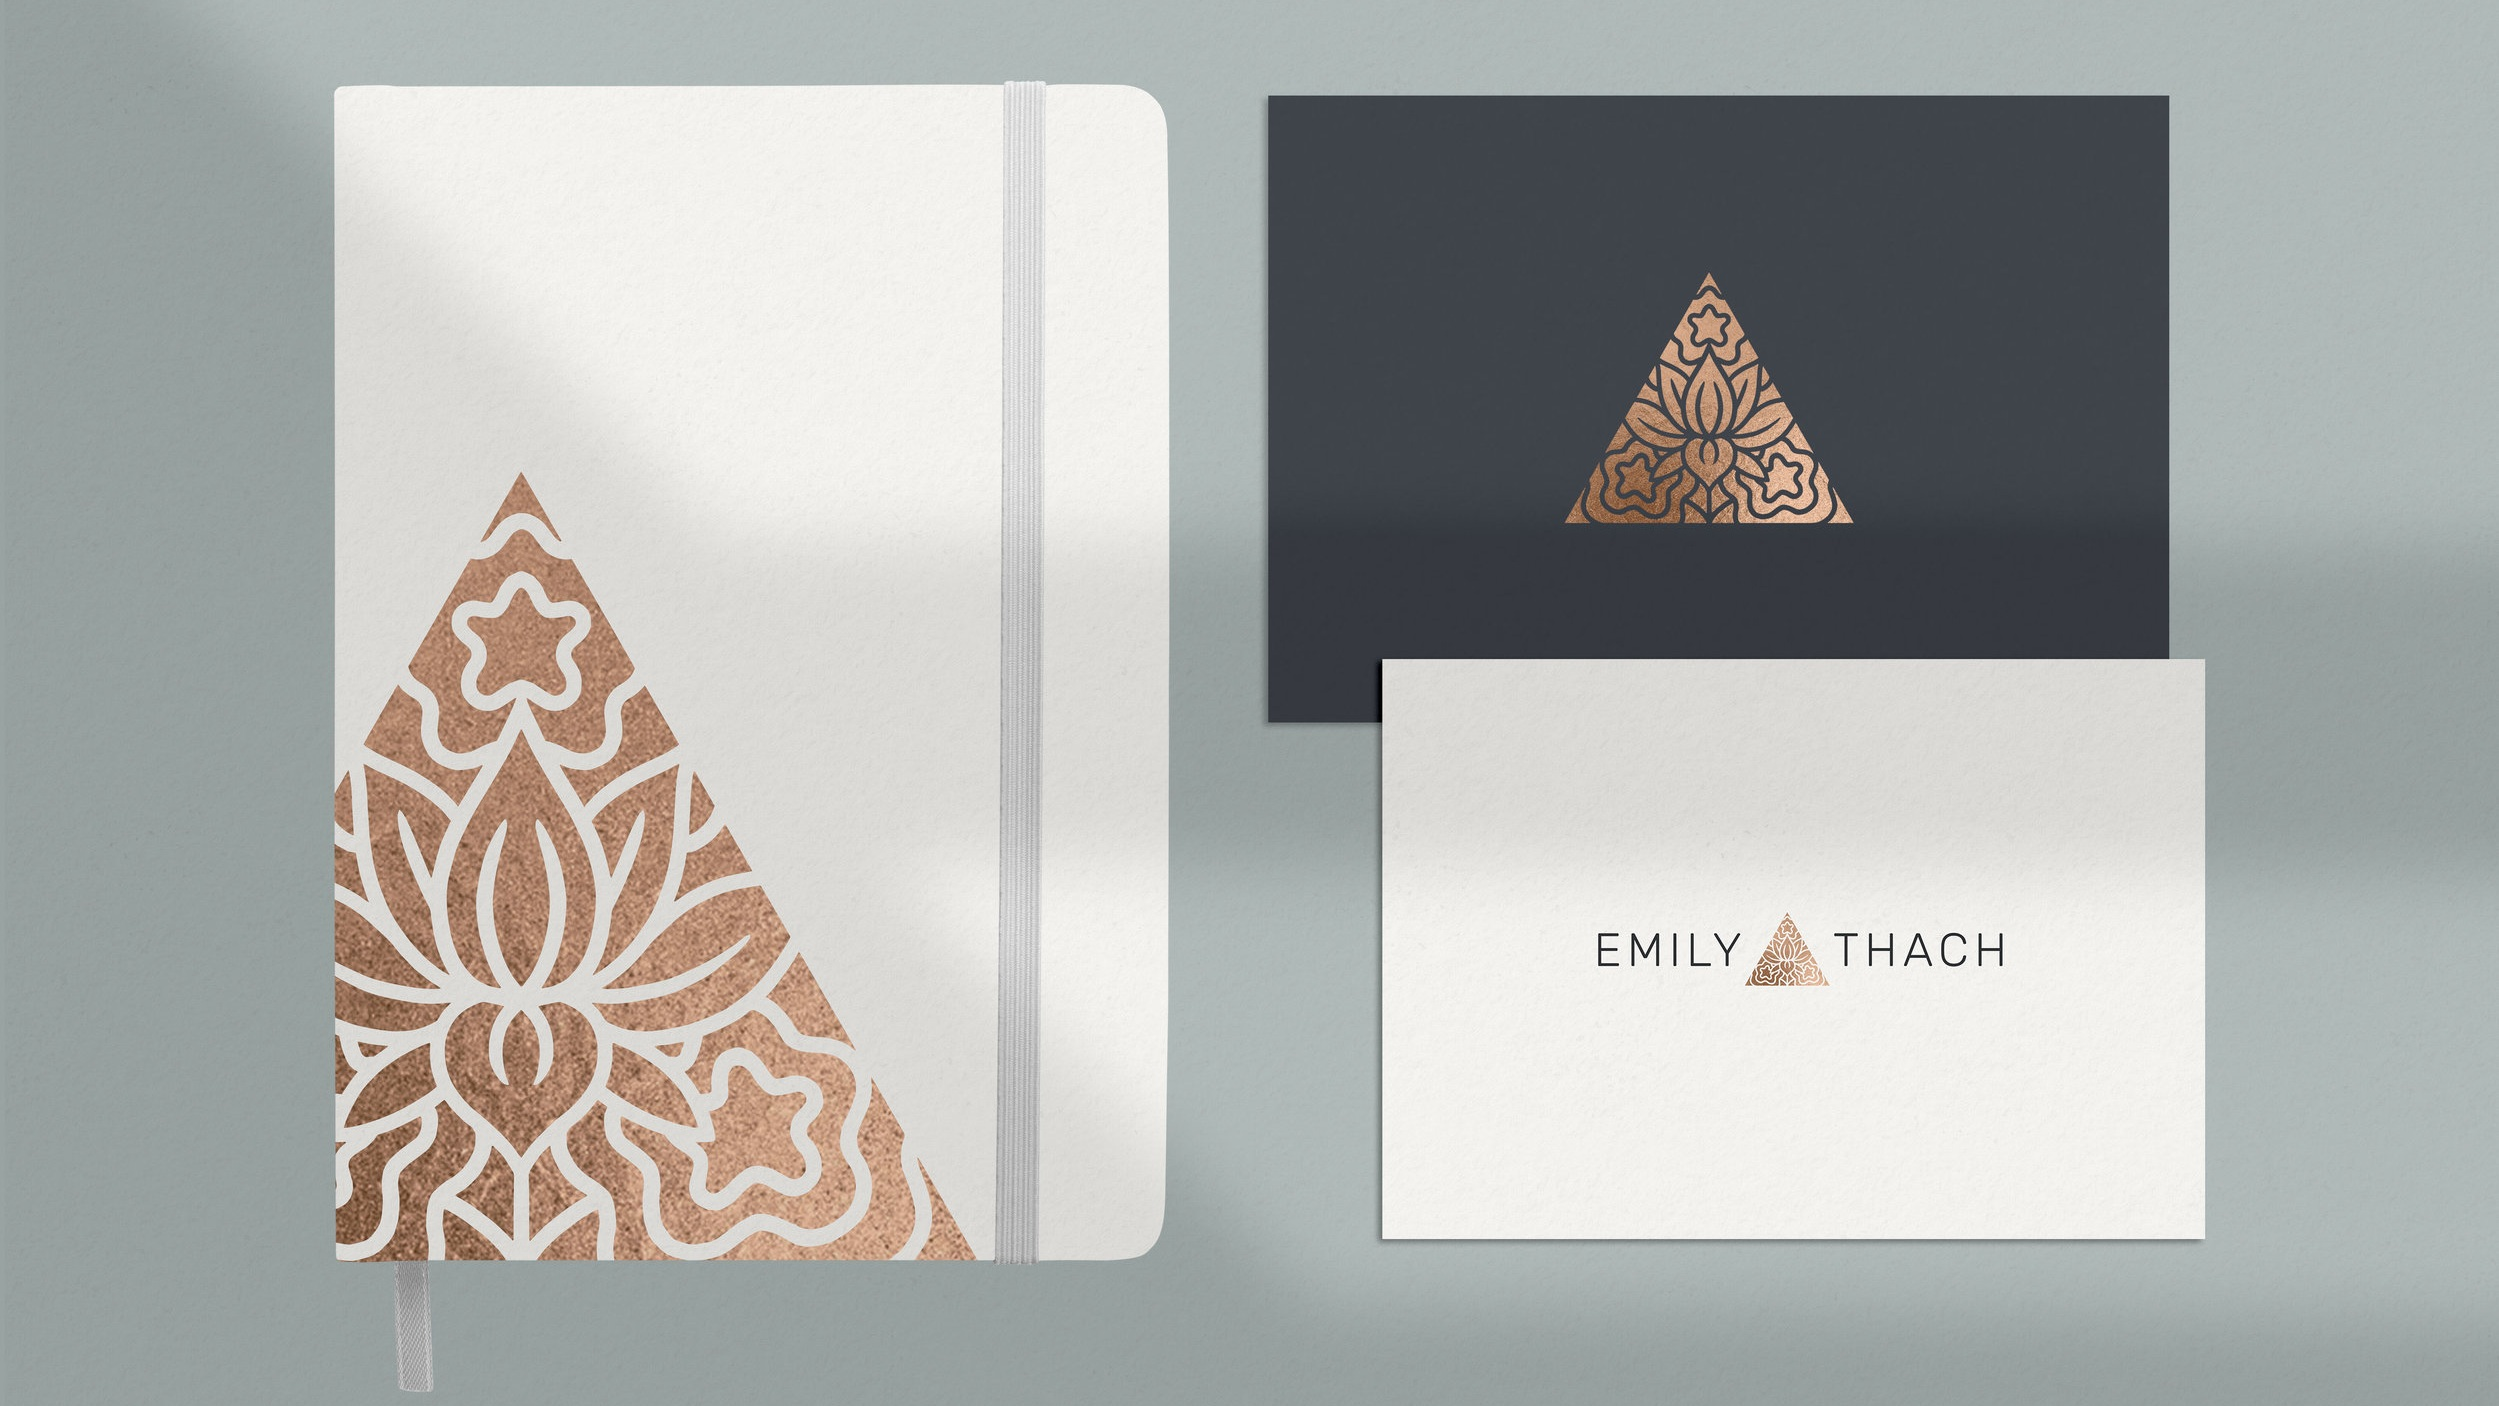 EMILY THACH - PROJECTBrand Strategy, Logo Design, Web Development